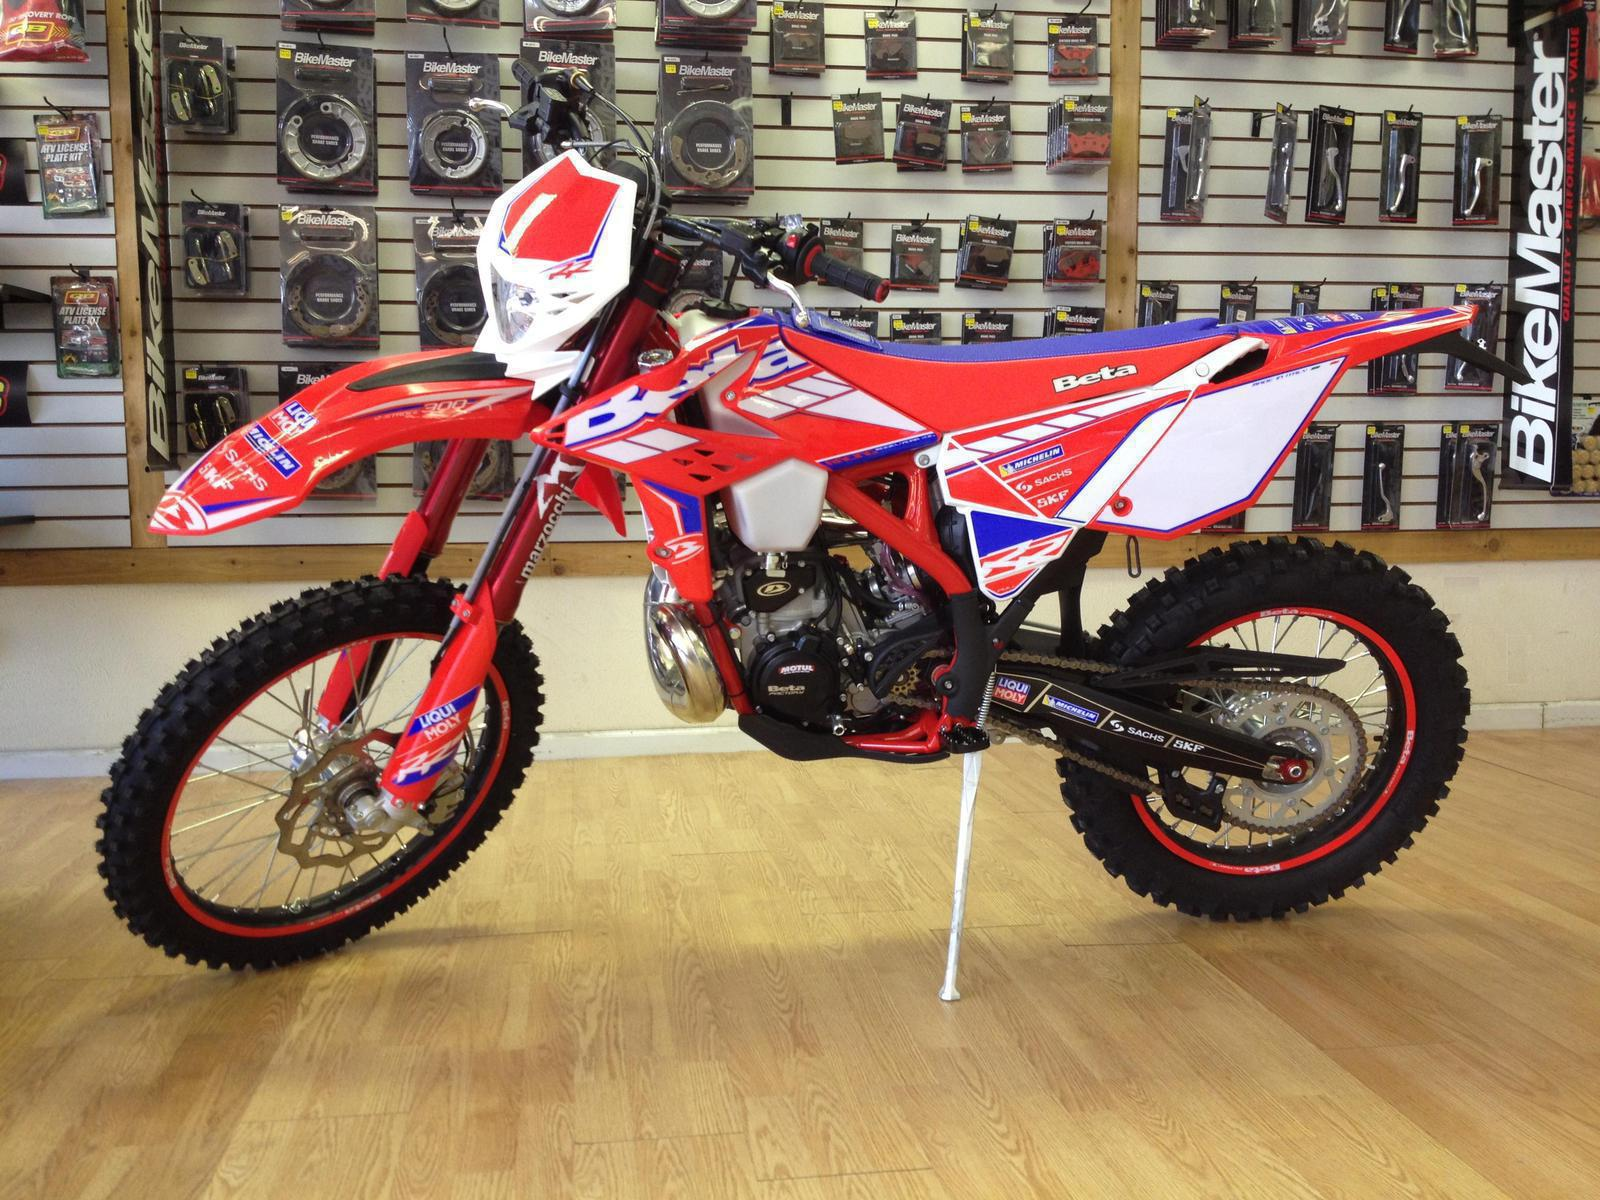 Beta 300 Rr For Sale >> Beta For Sale Price - Used Beta Motorcycle Supply